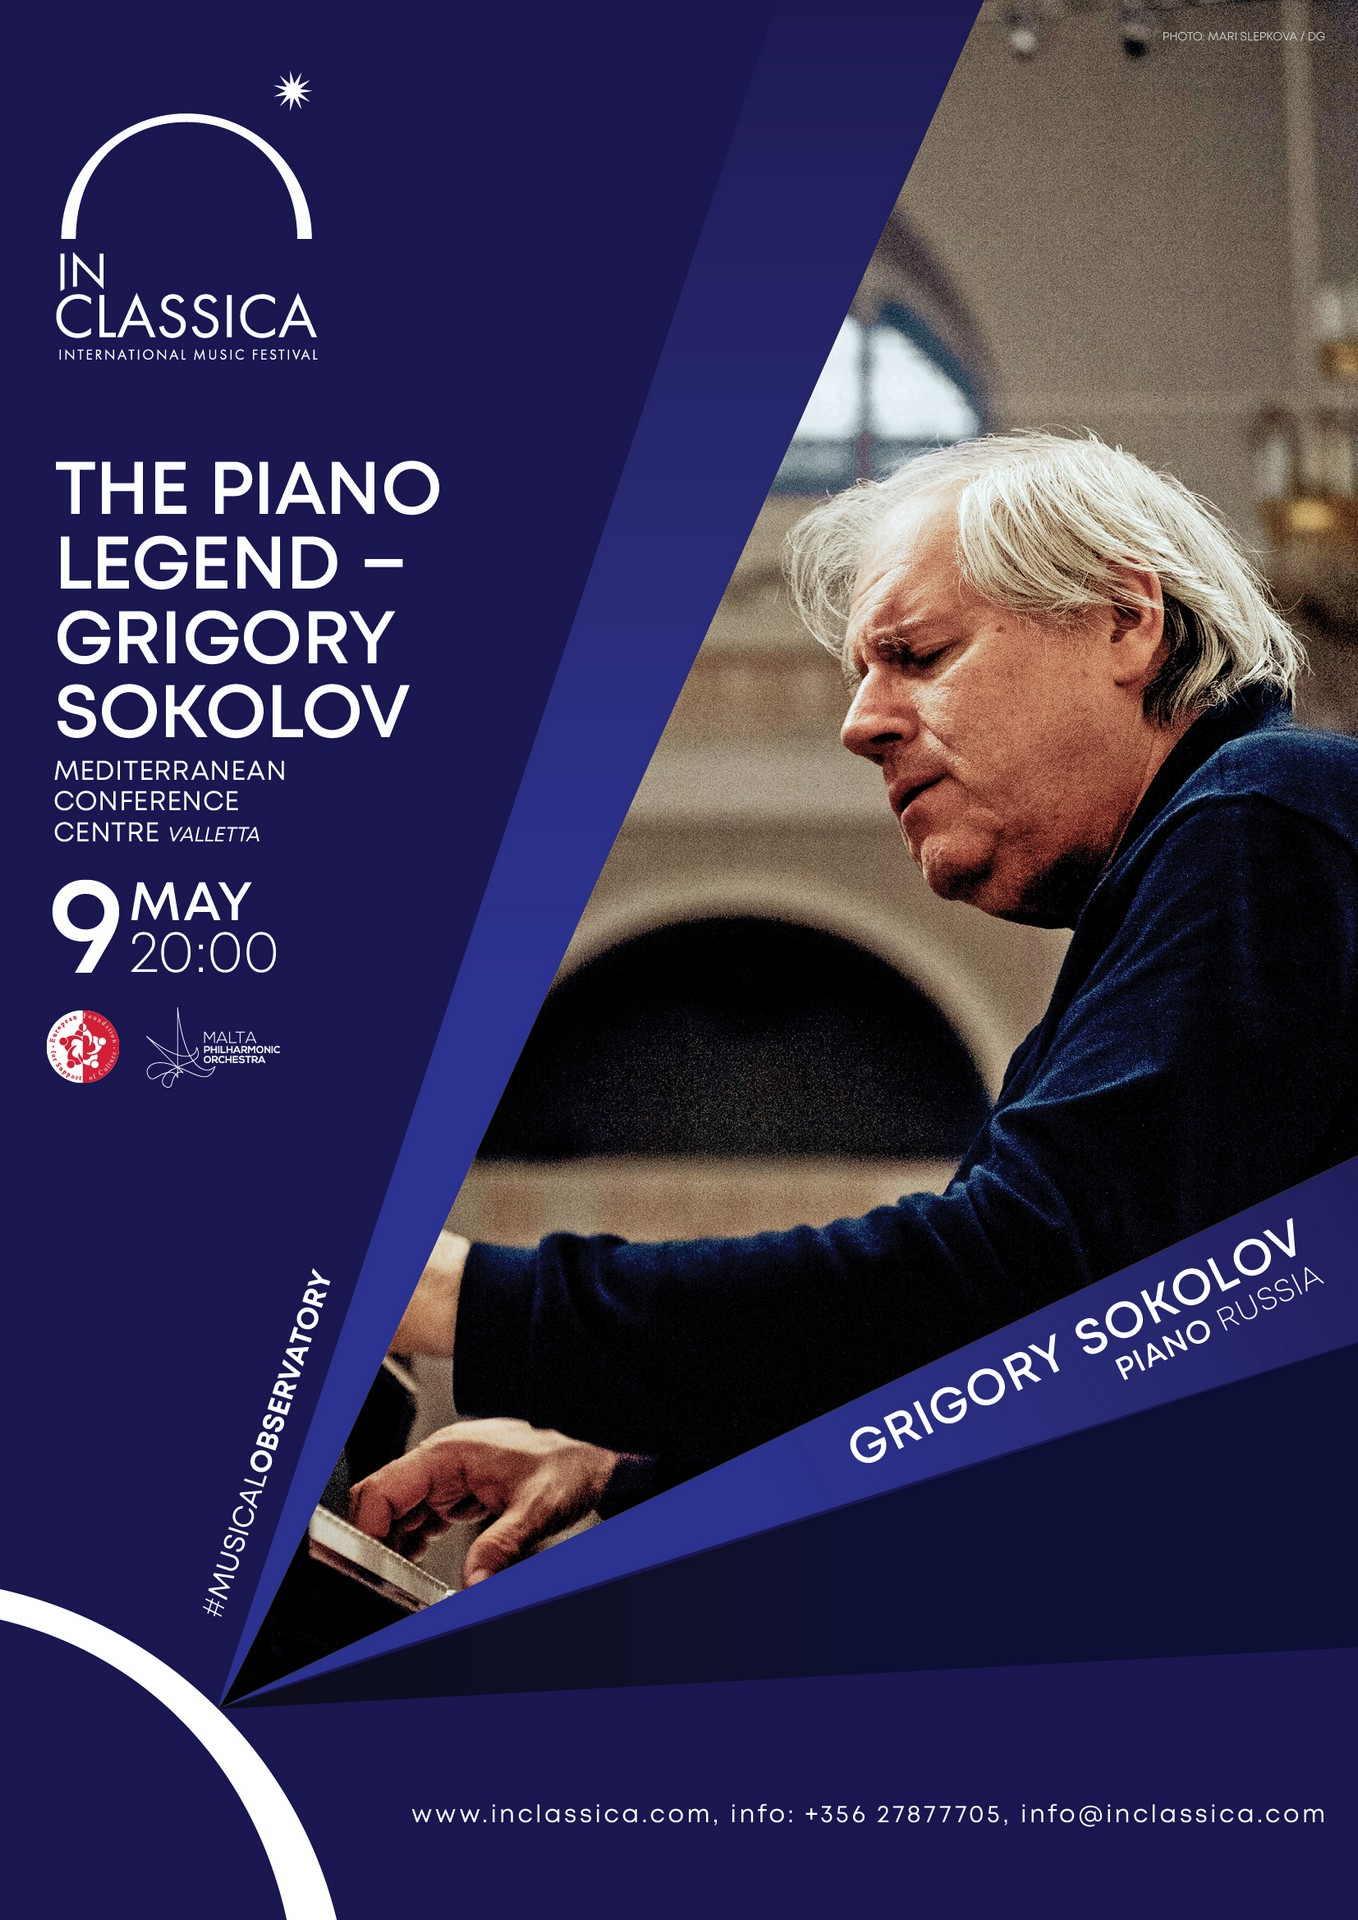 InClassica: THE PIANO LEGEND – GRIGORY SOKOLOV flyer